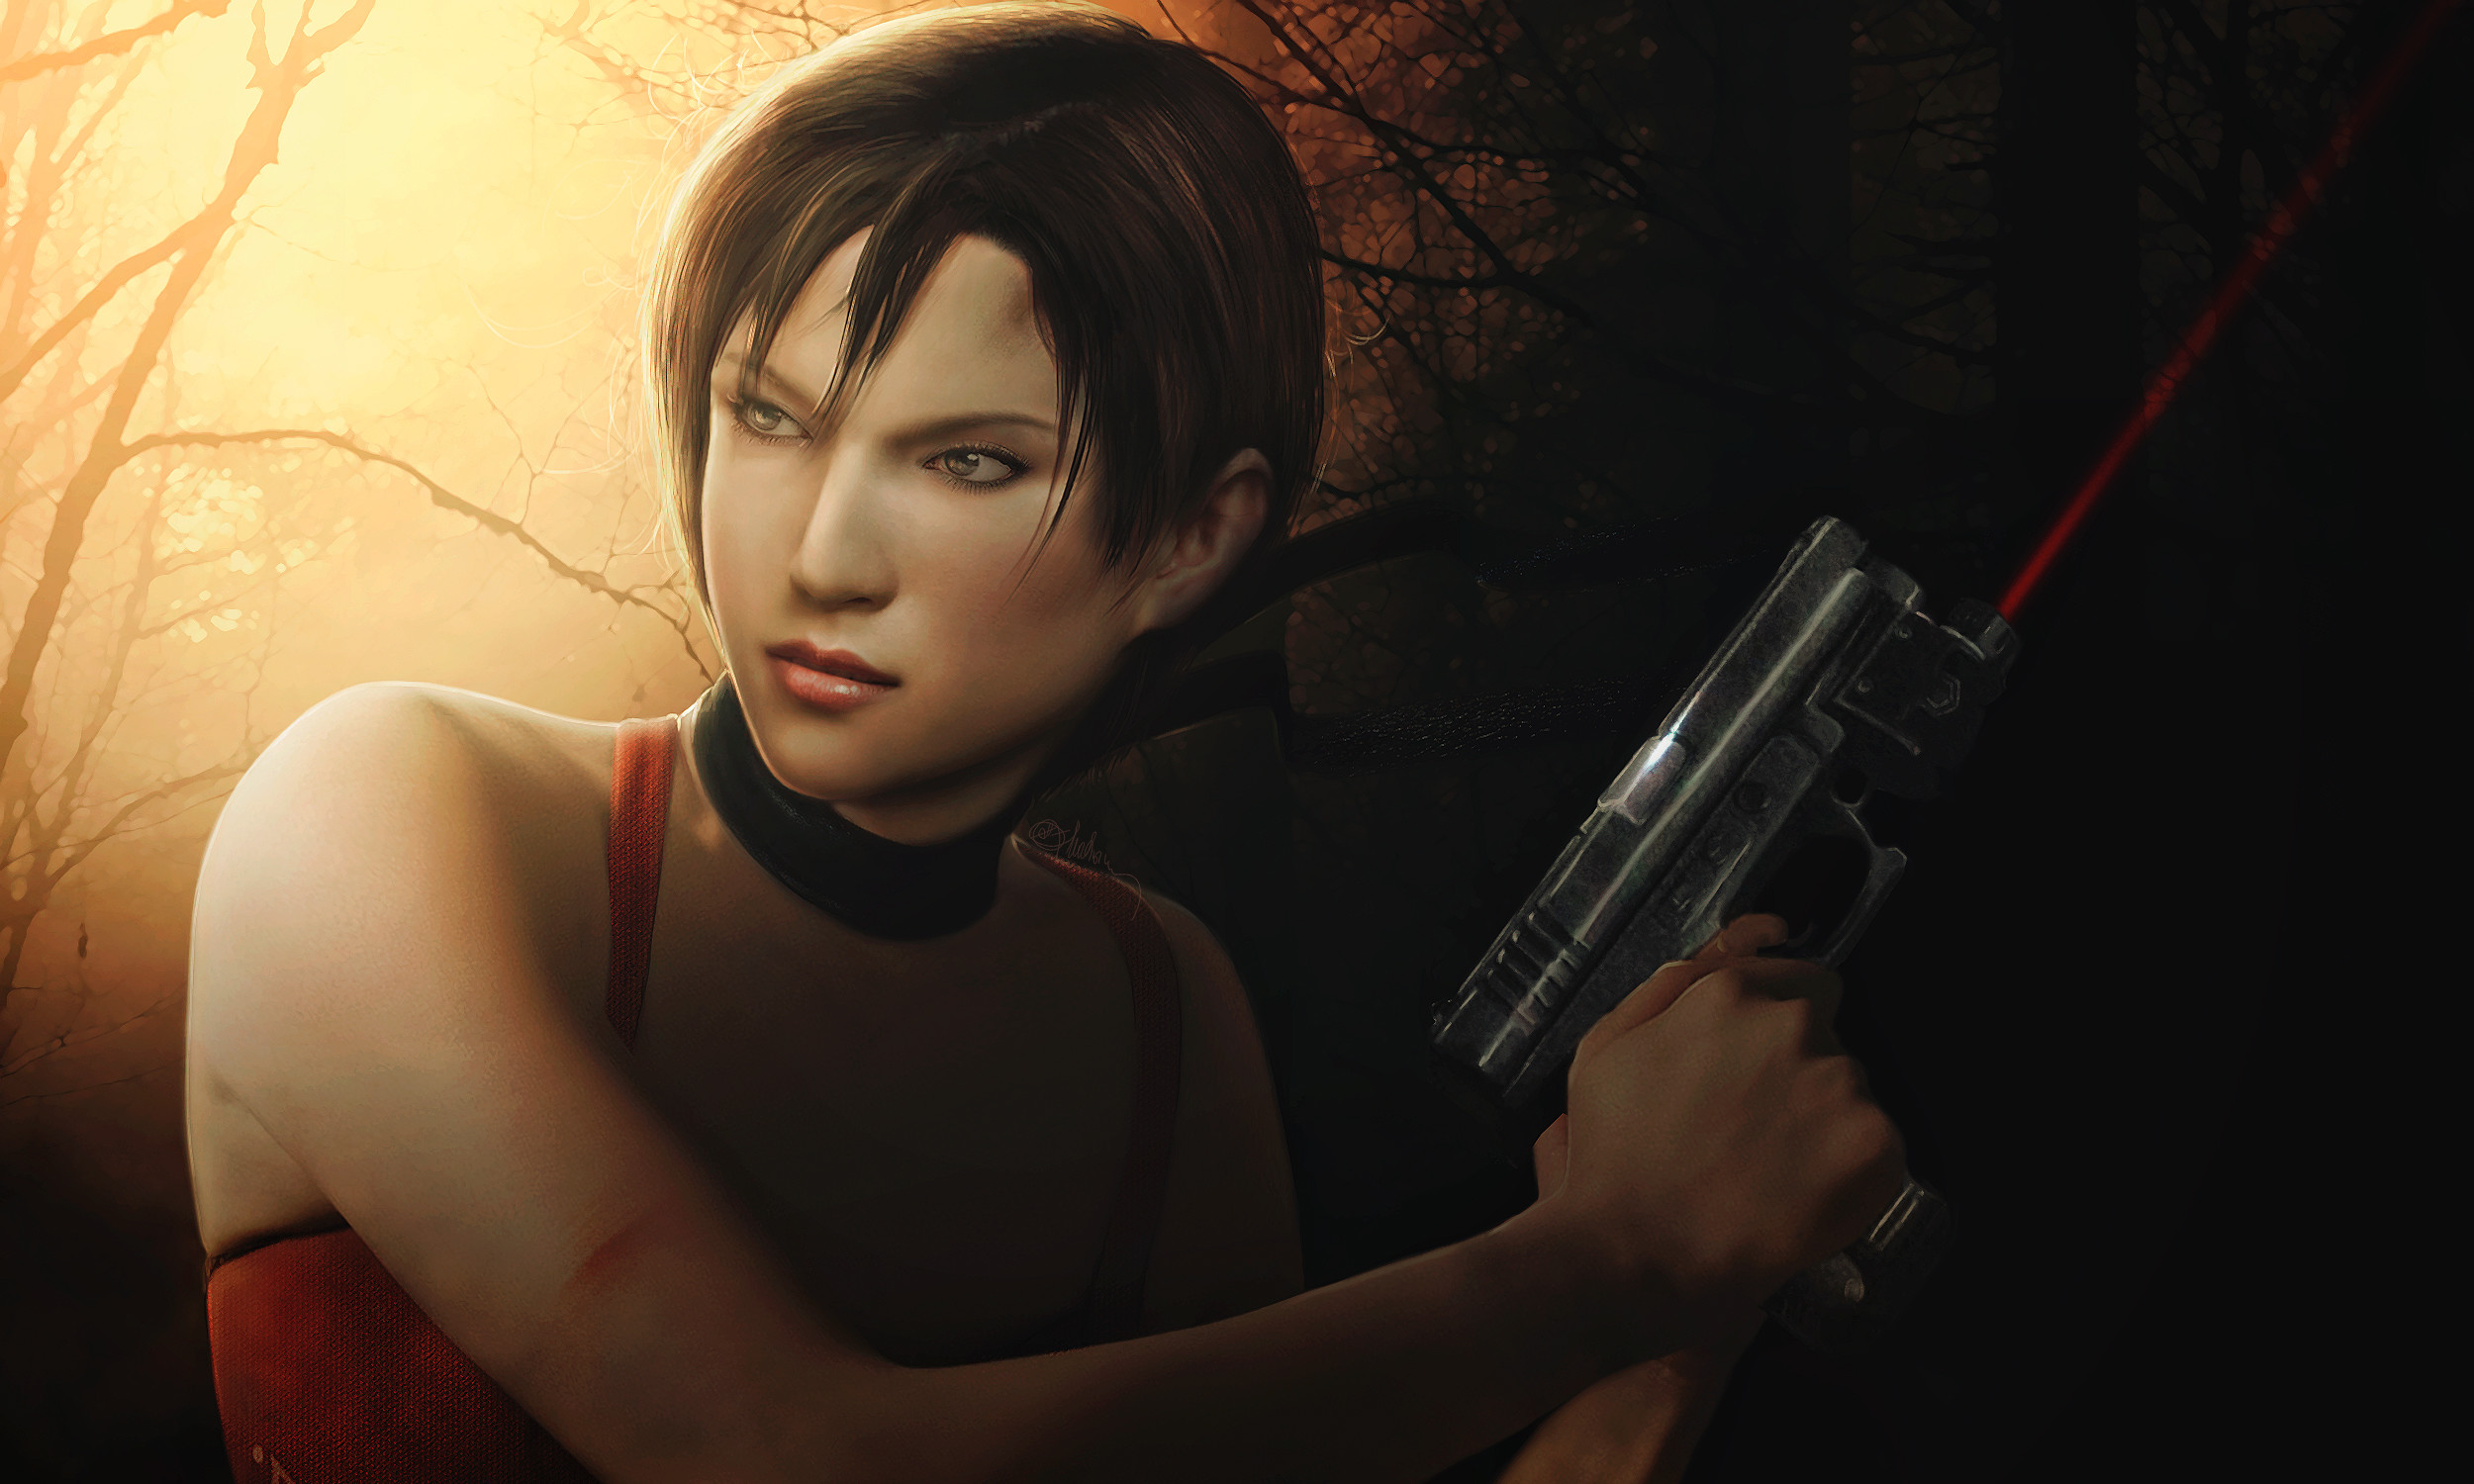 2500x1500 ... Photorealistic Ada Wong RE4 wallpaper  px by push-pulse